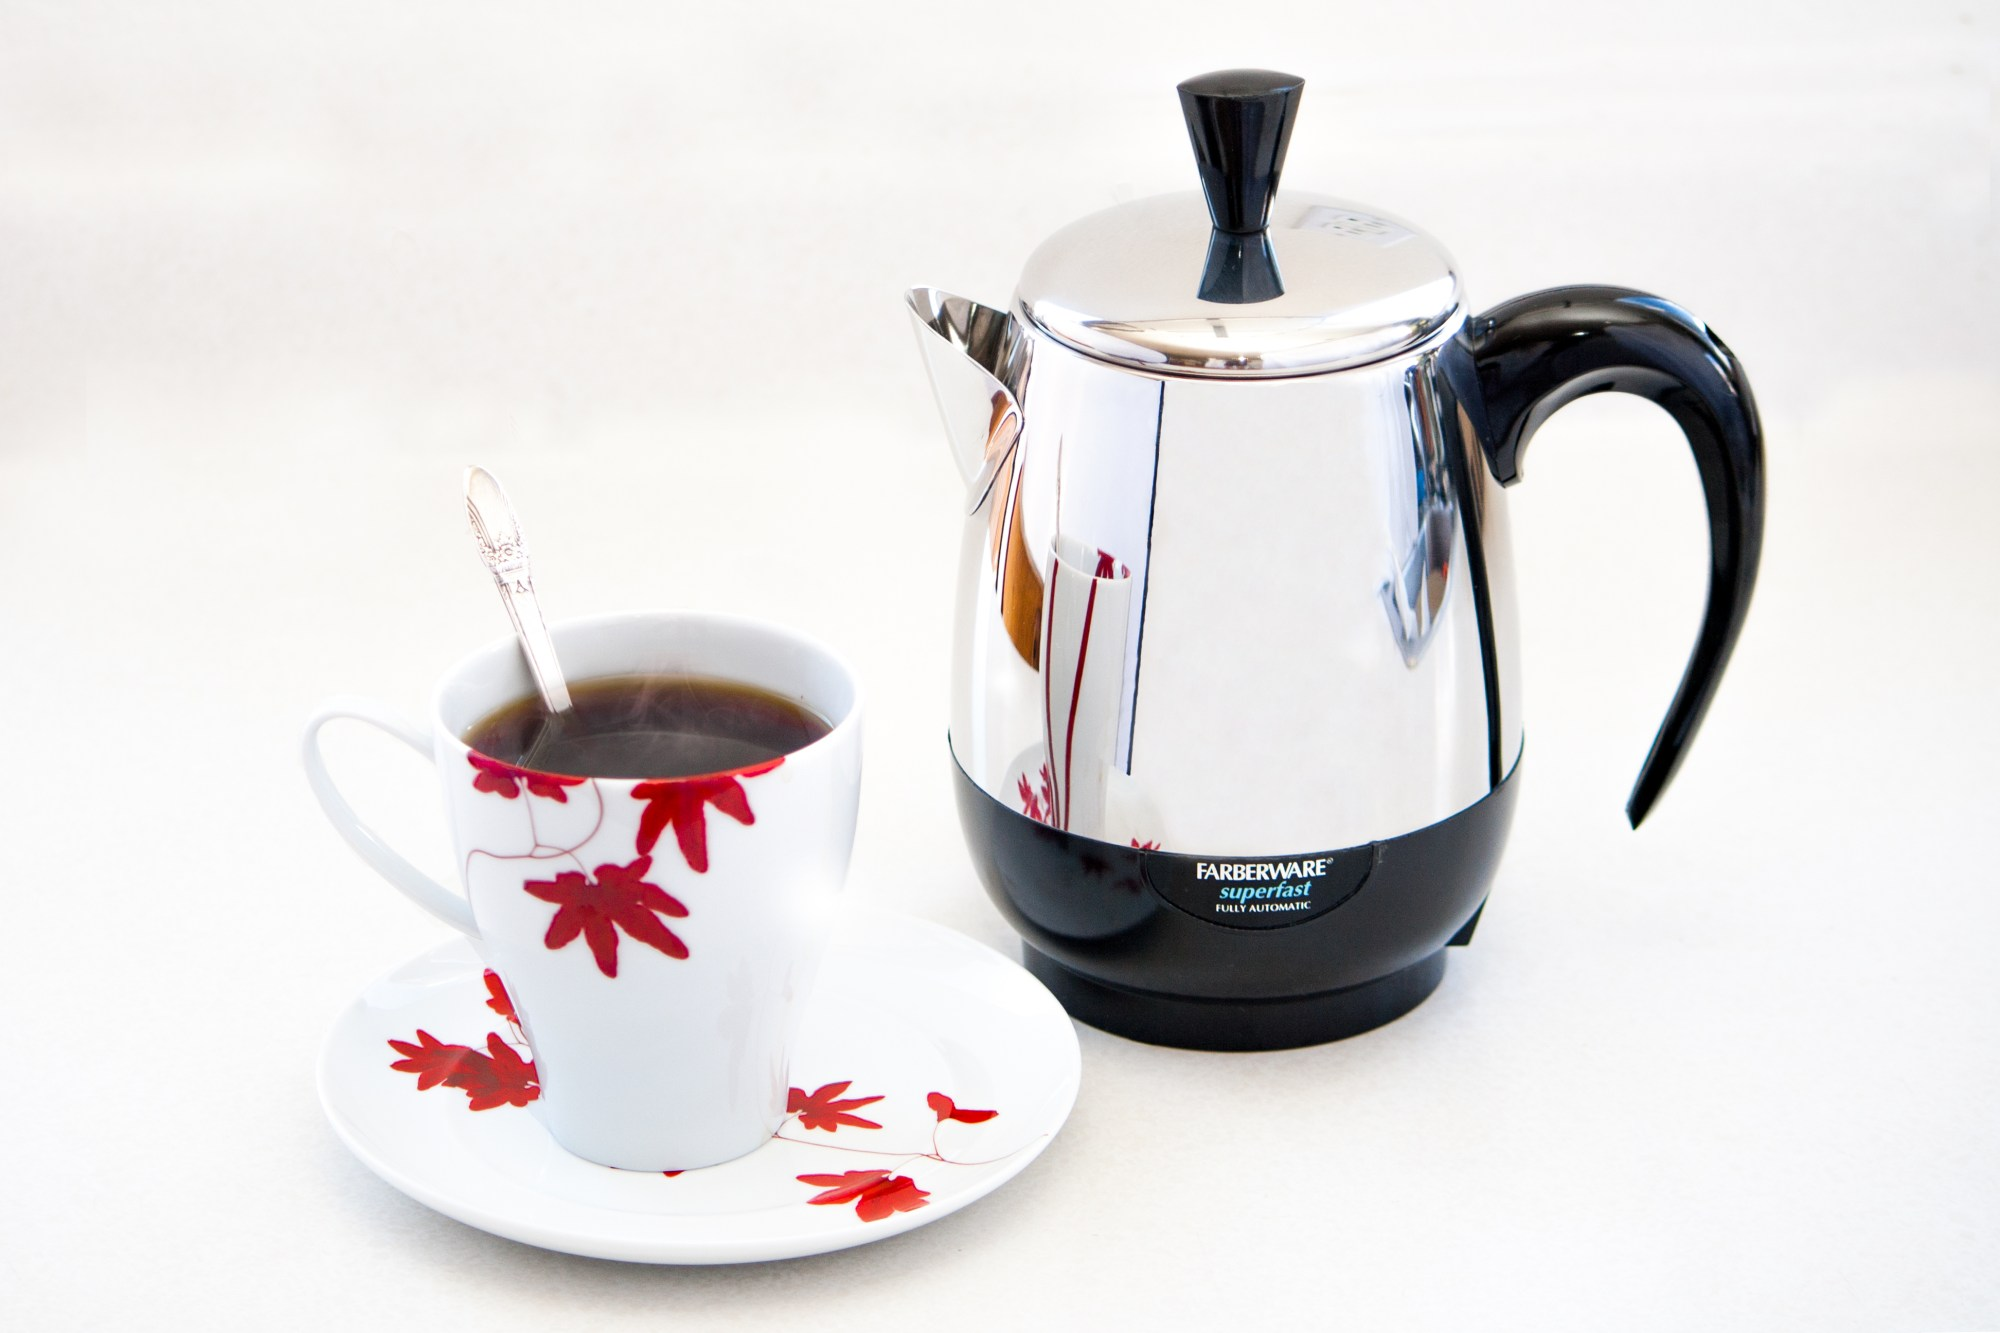 hight resolution of how to operate a farberware percolator